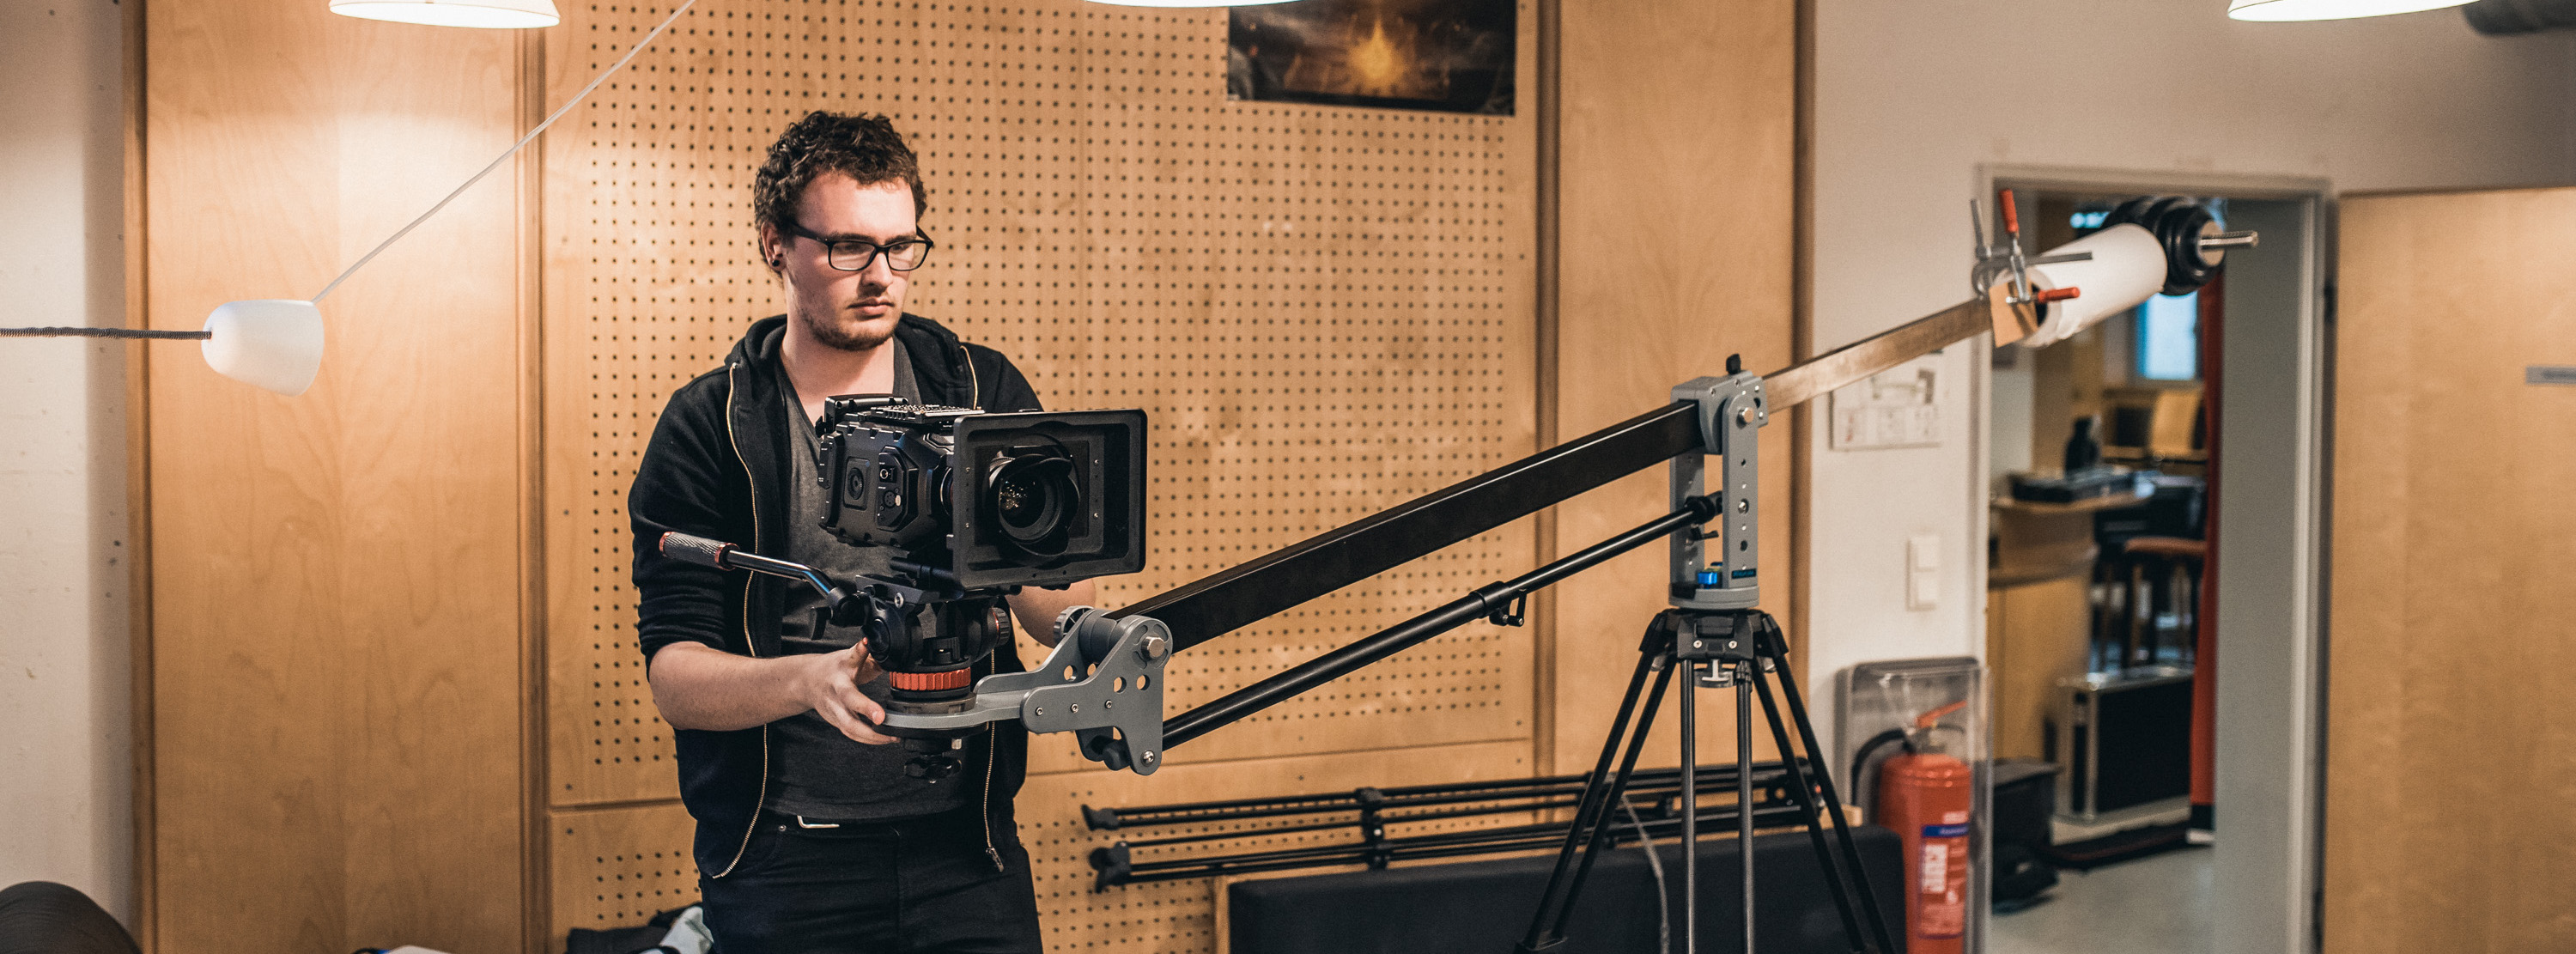 Unwinged Pictures Jasper Zevering with Ursa 4.6 on Jib